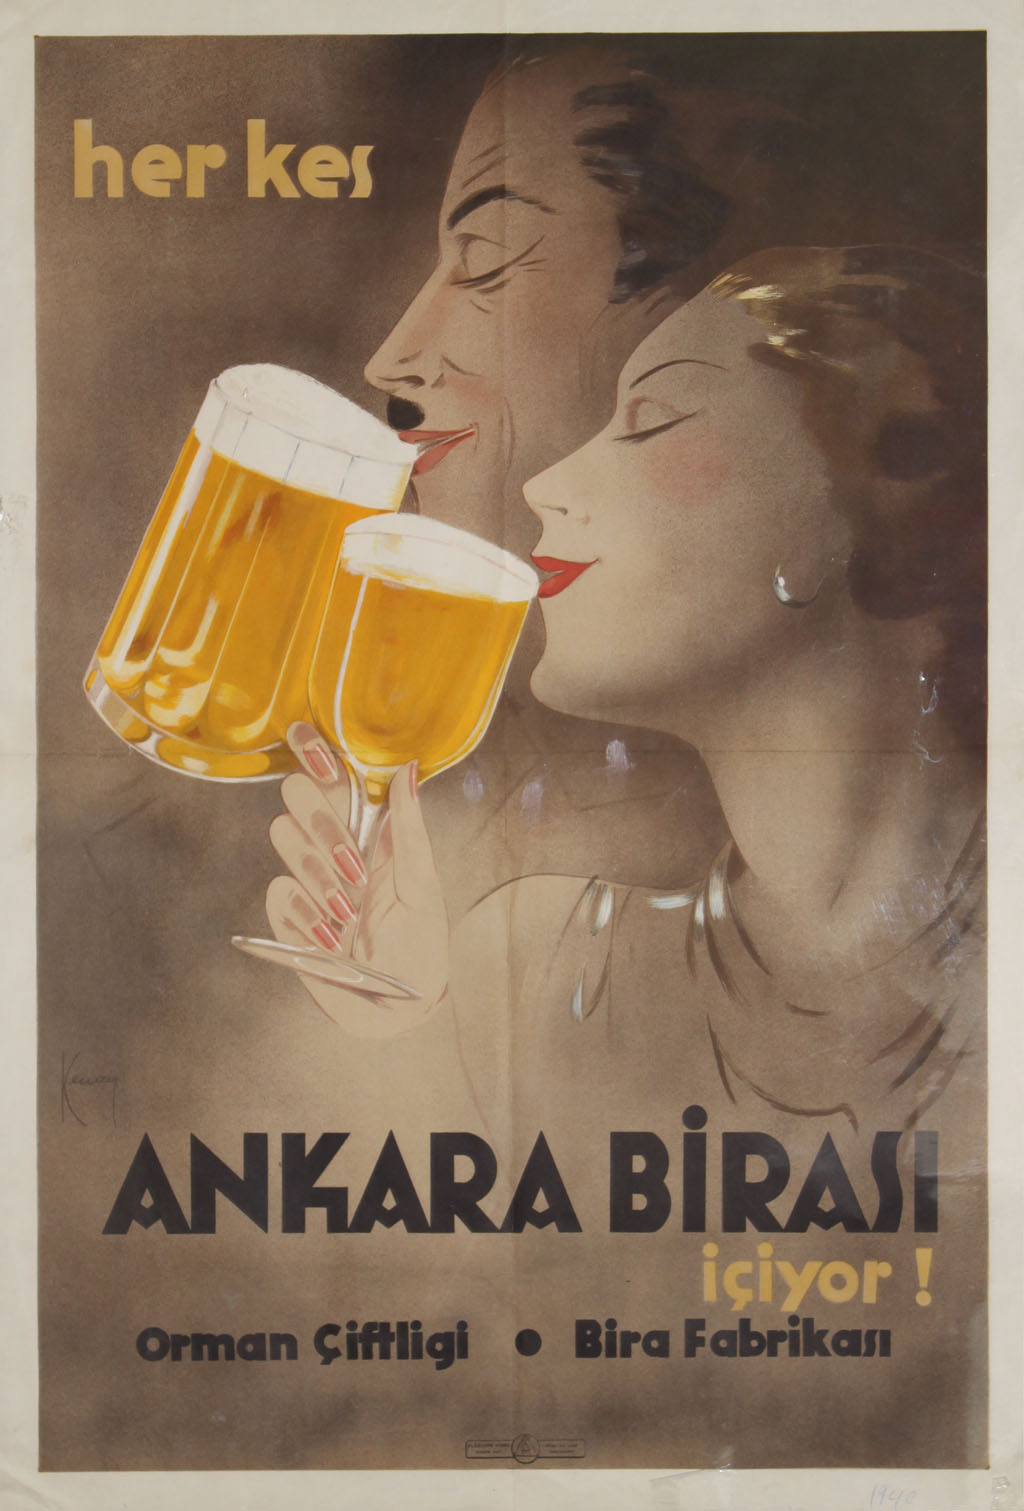 Advertising poster for Ankara Beer, 1930s.